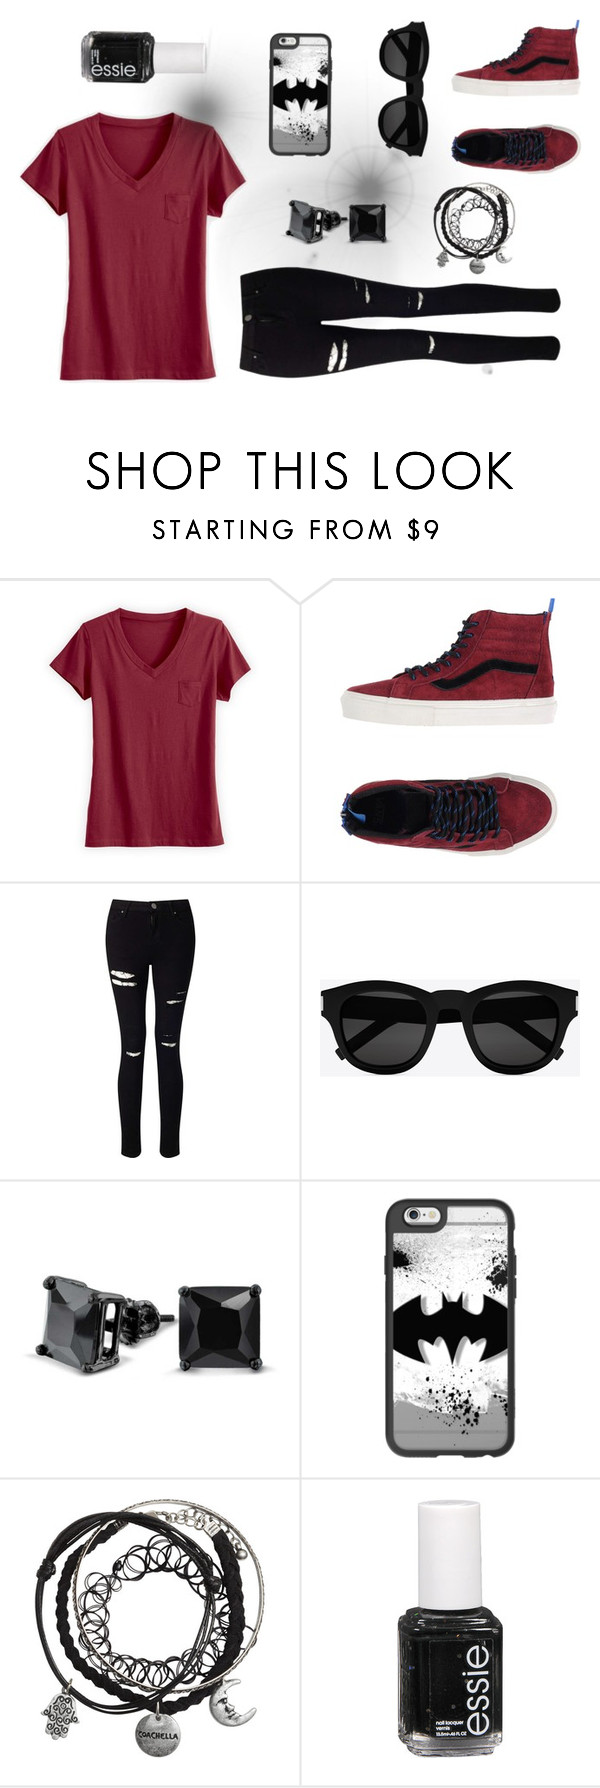 """Does it come in black?  ~Julia"" by limedream ❤ liked on Polyvore featuring Vans, Miss Selfridge, Yves Saint Laurent, Bling Jewelry, Casetify, Essie, black, red, batman and redandblack"